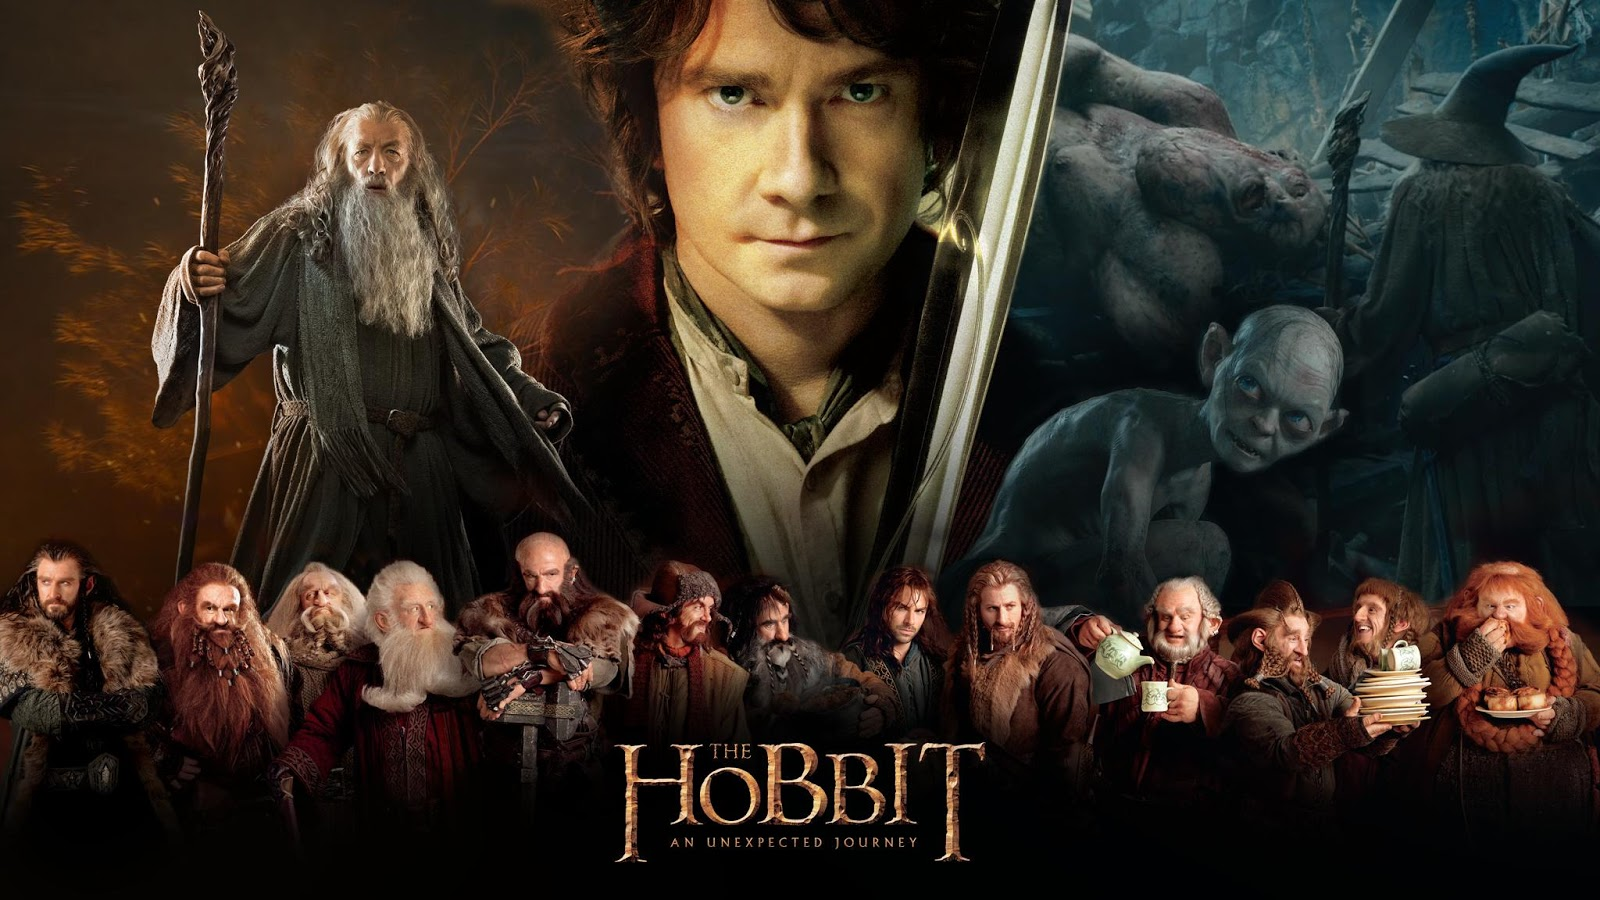 Download The Hobbit: An Unexpected Journey BluRay 720p